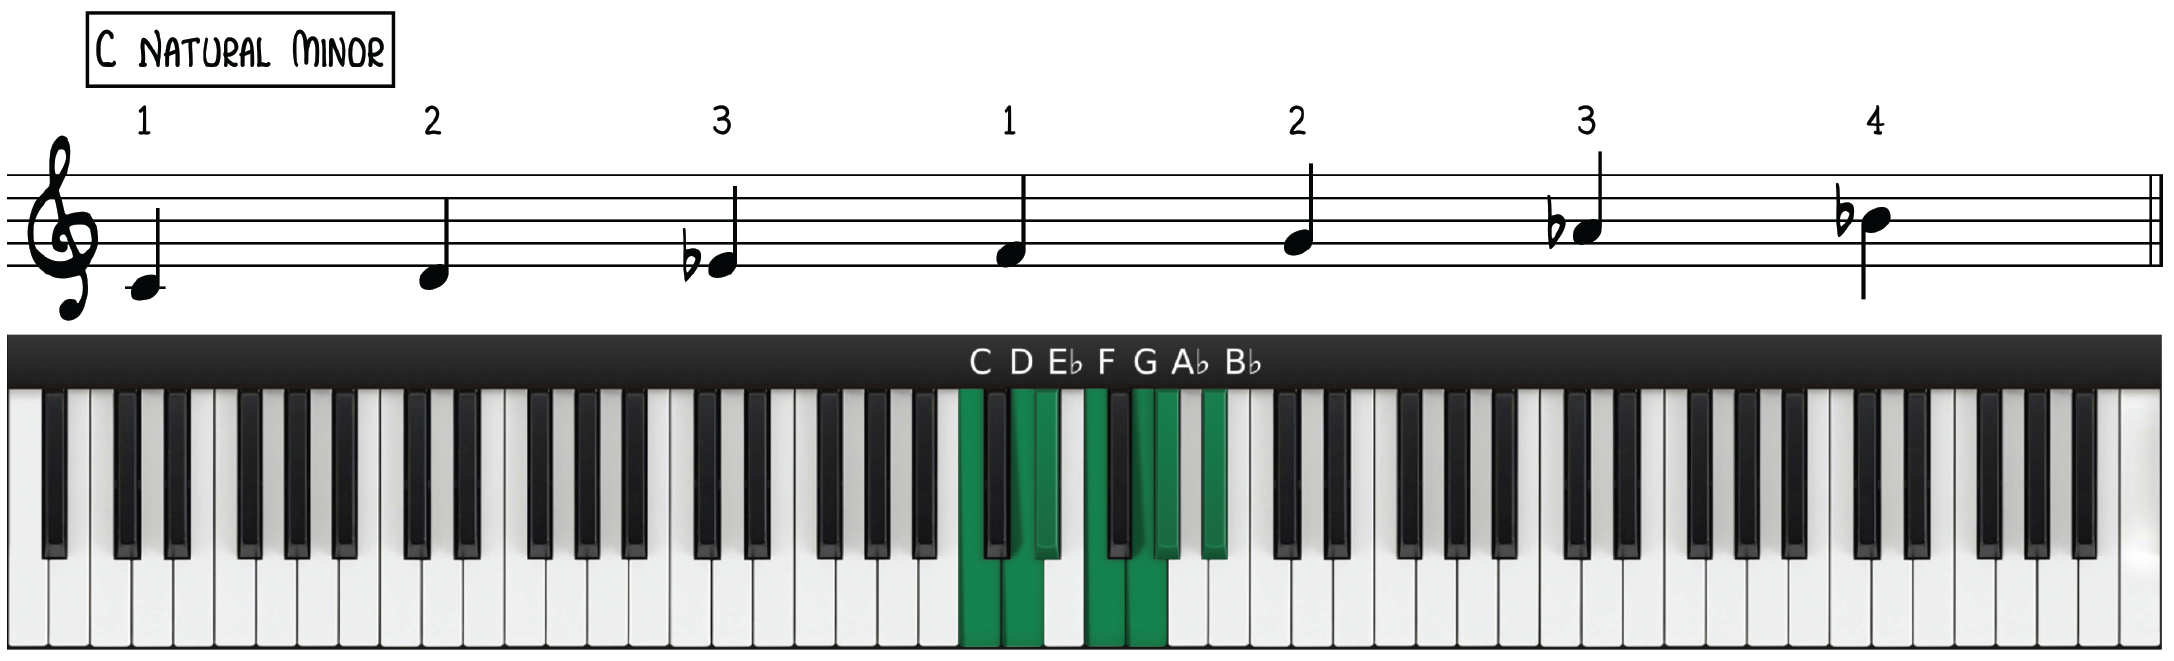 C Natural Minor Scale Notation and Piano Diagram